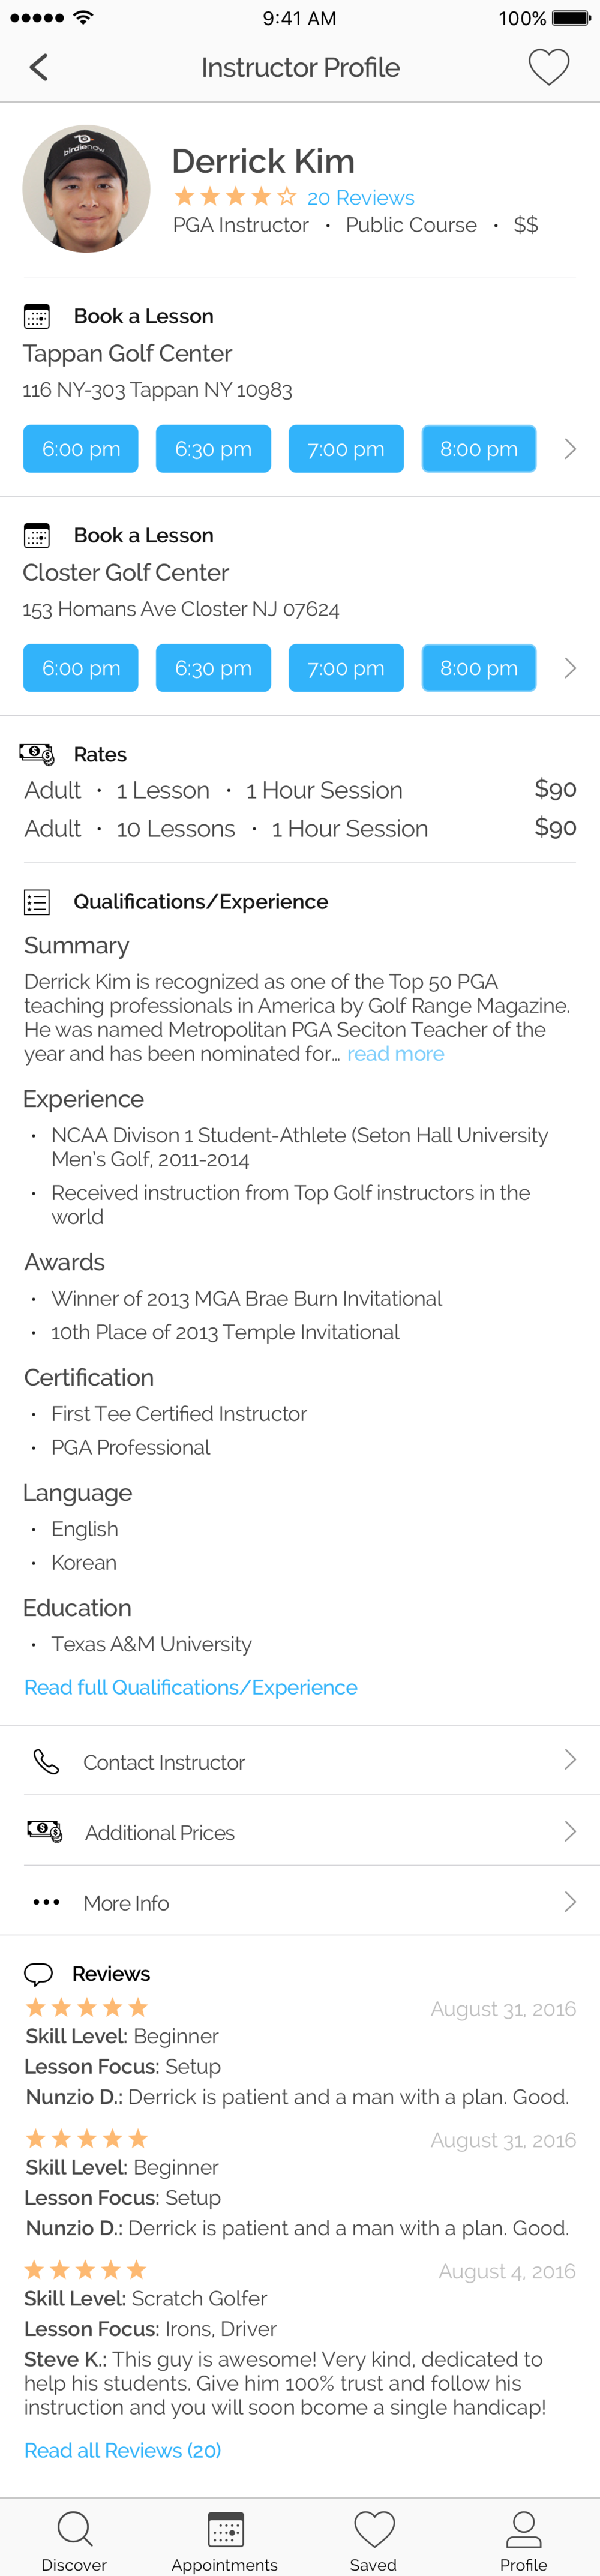 Instructor Profile.png